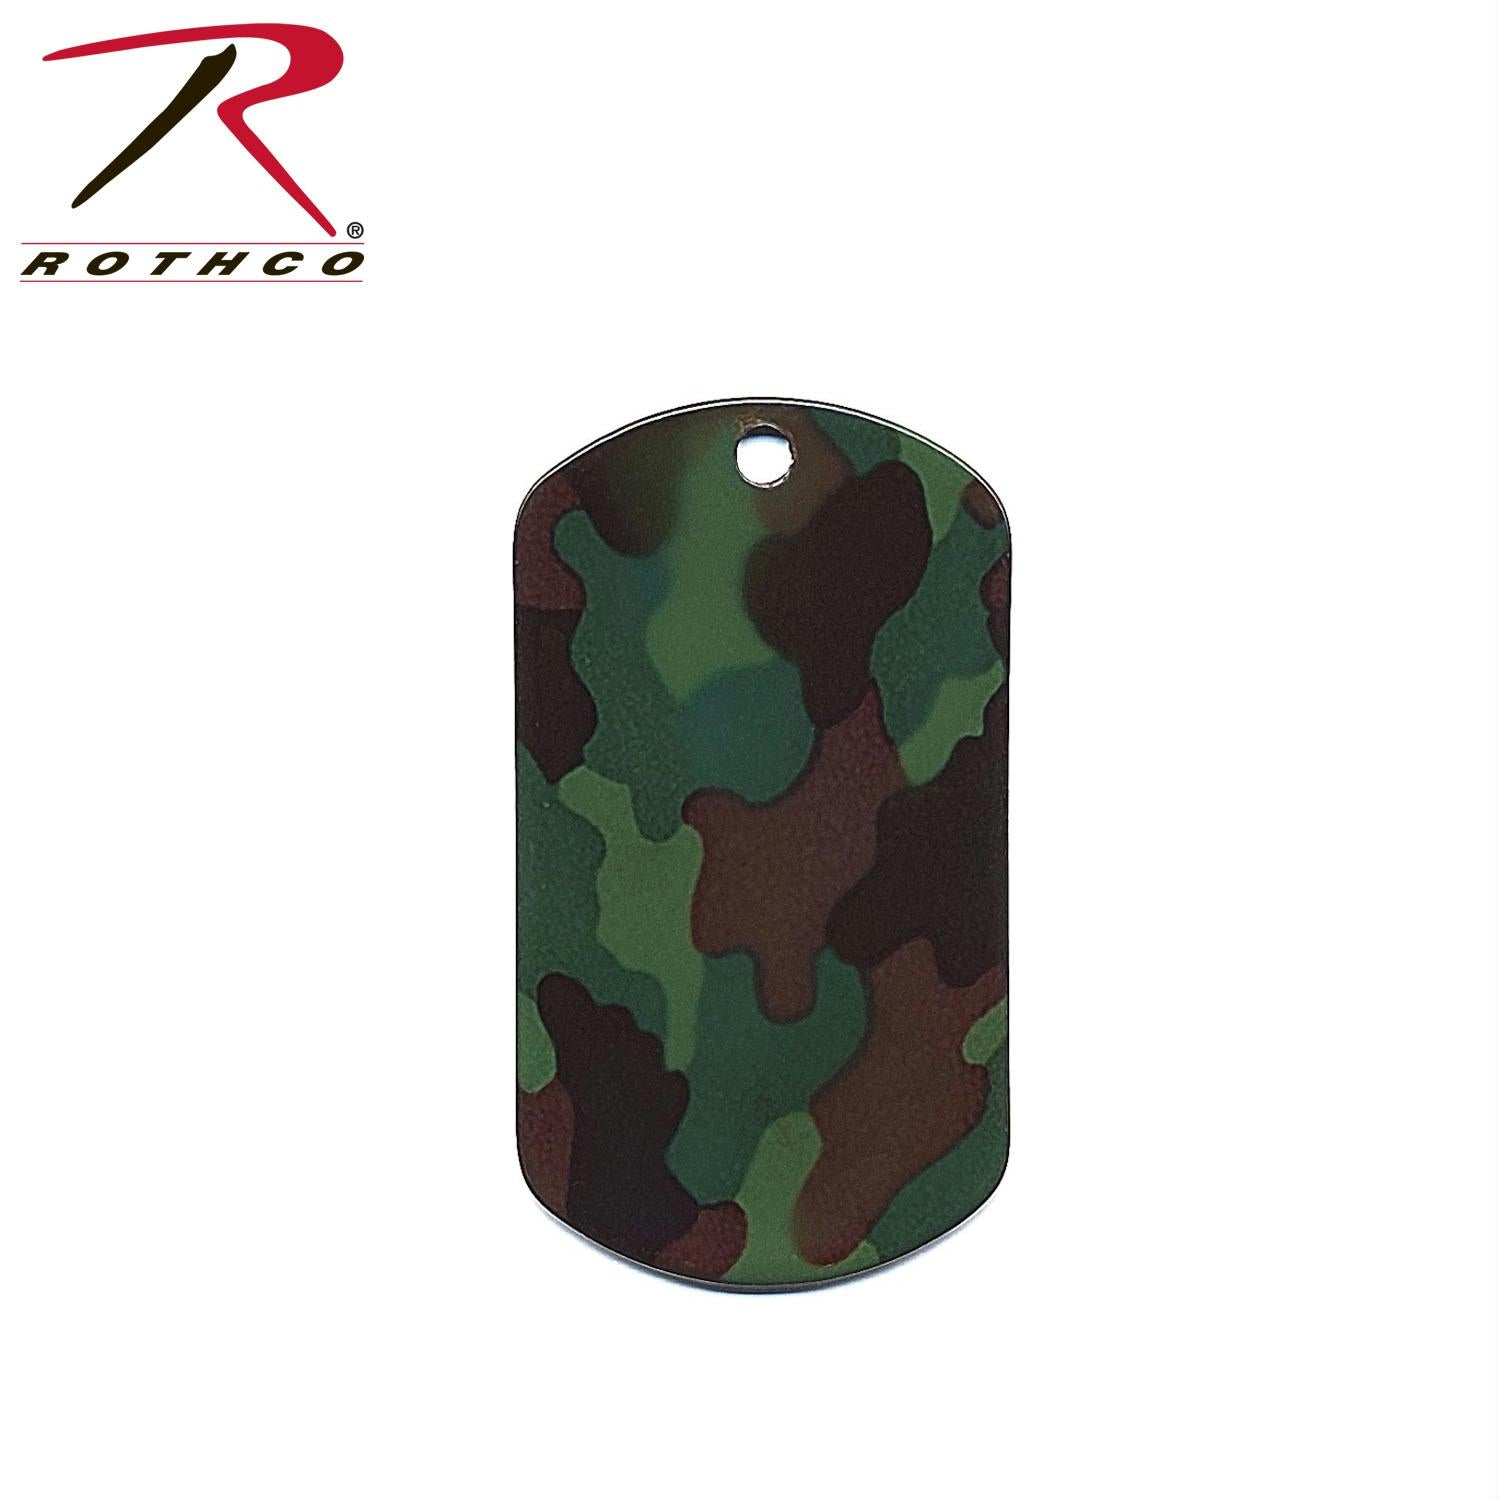 Rothco Camo Dog Tags - Woodland Camo